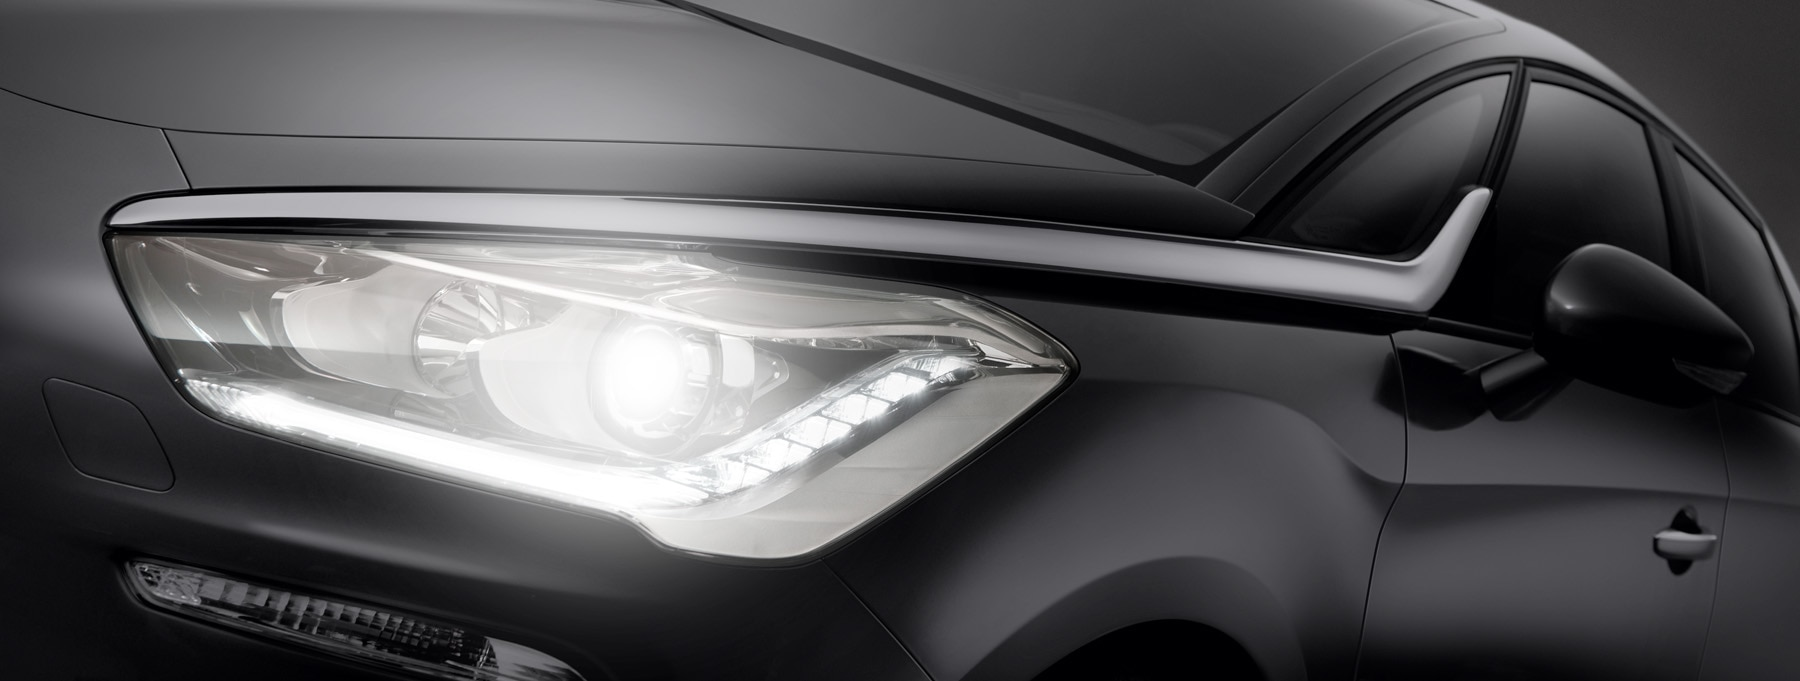 Safety - Automatic headlights